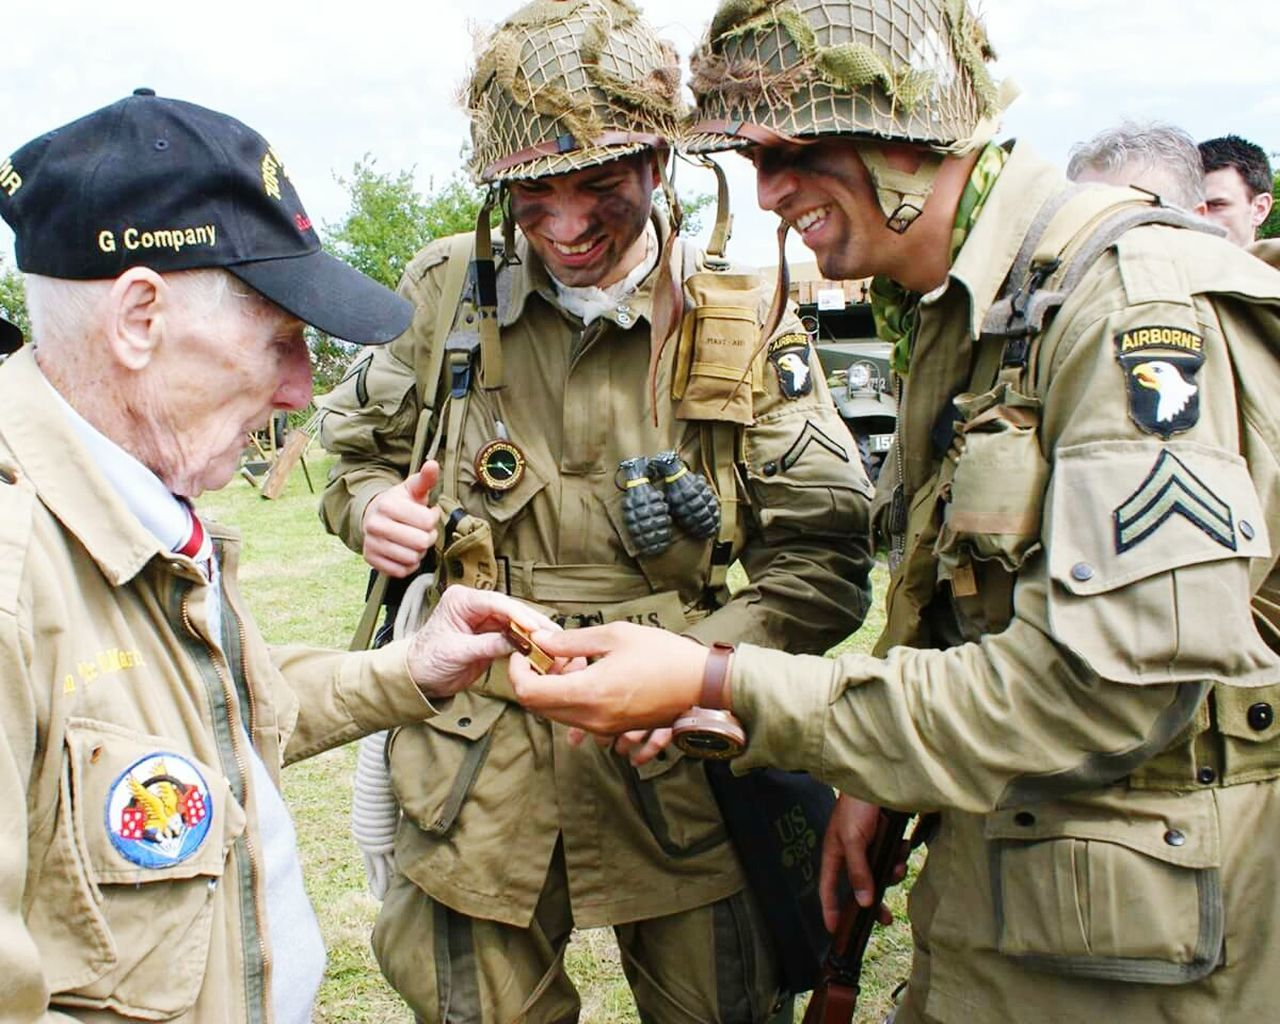 Beautiful stock photos of veteran's day, togetherness, love, bonding, lifestyles